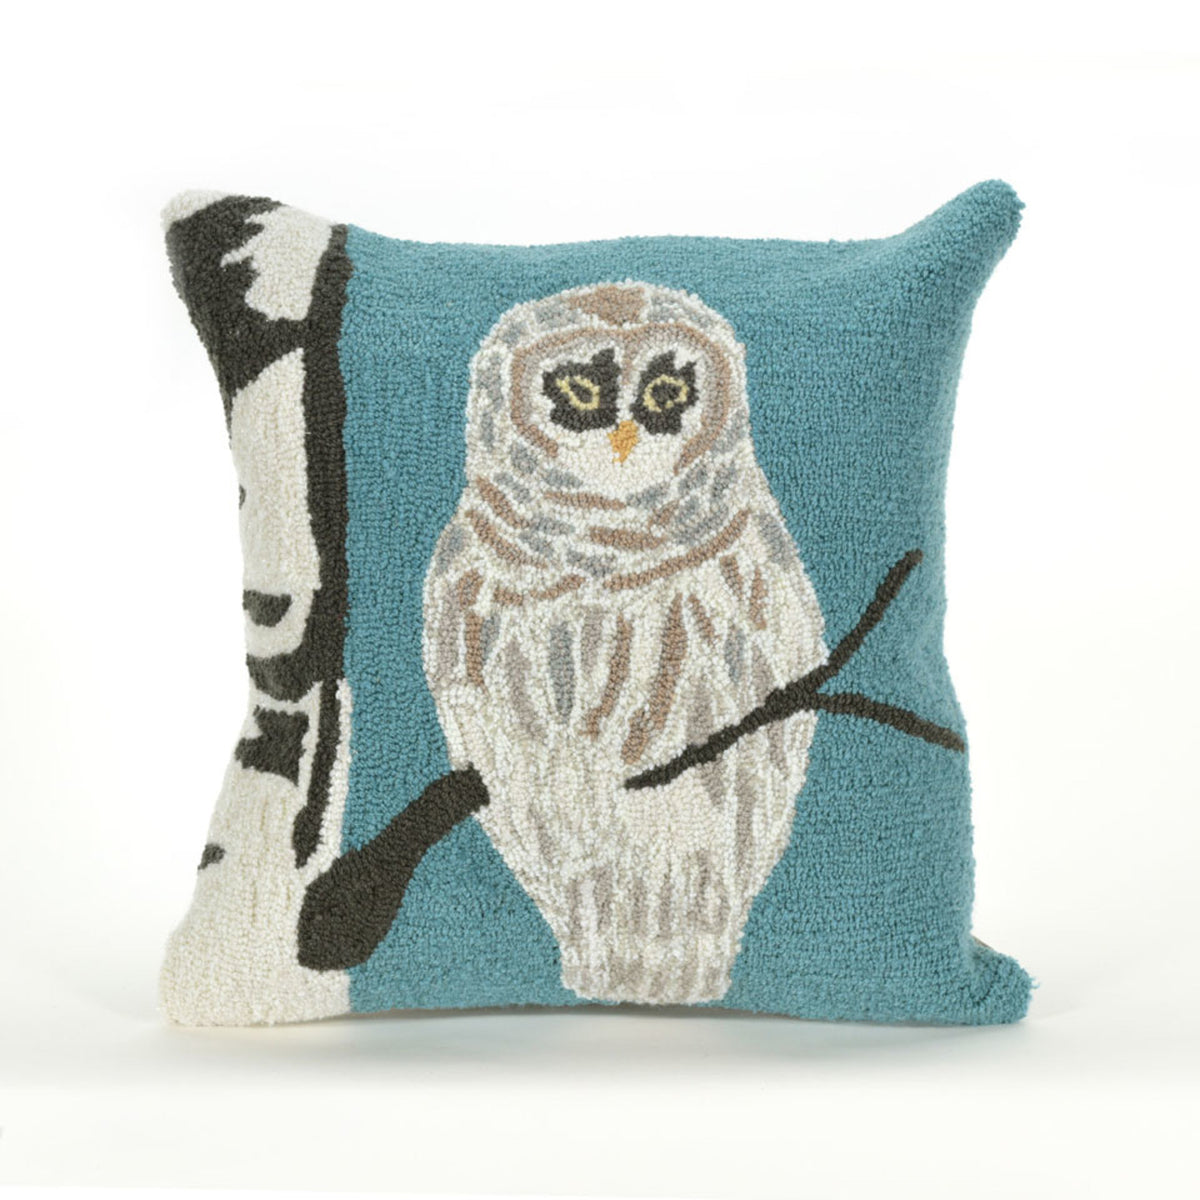 Frontporch Snowy Owl Night Pillows